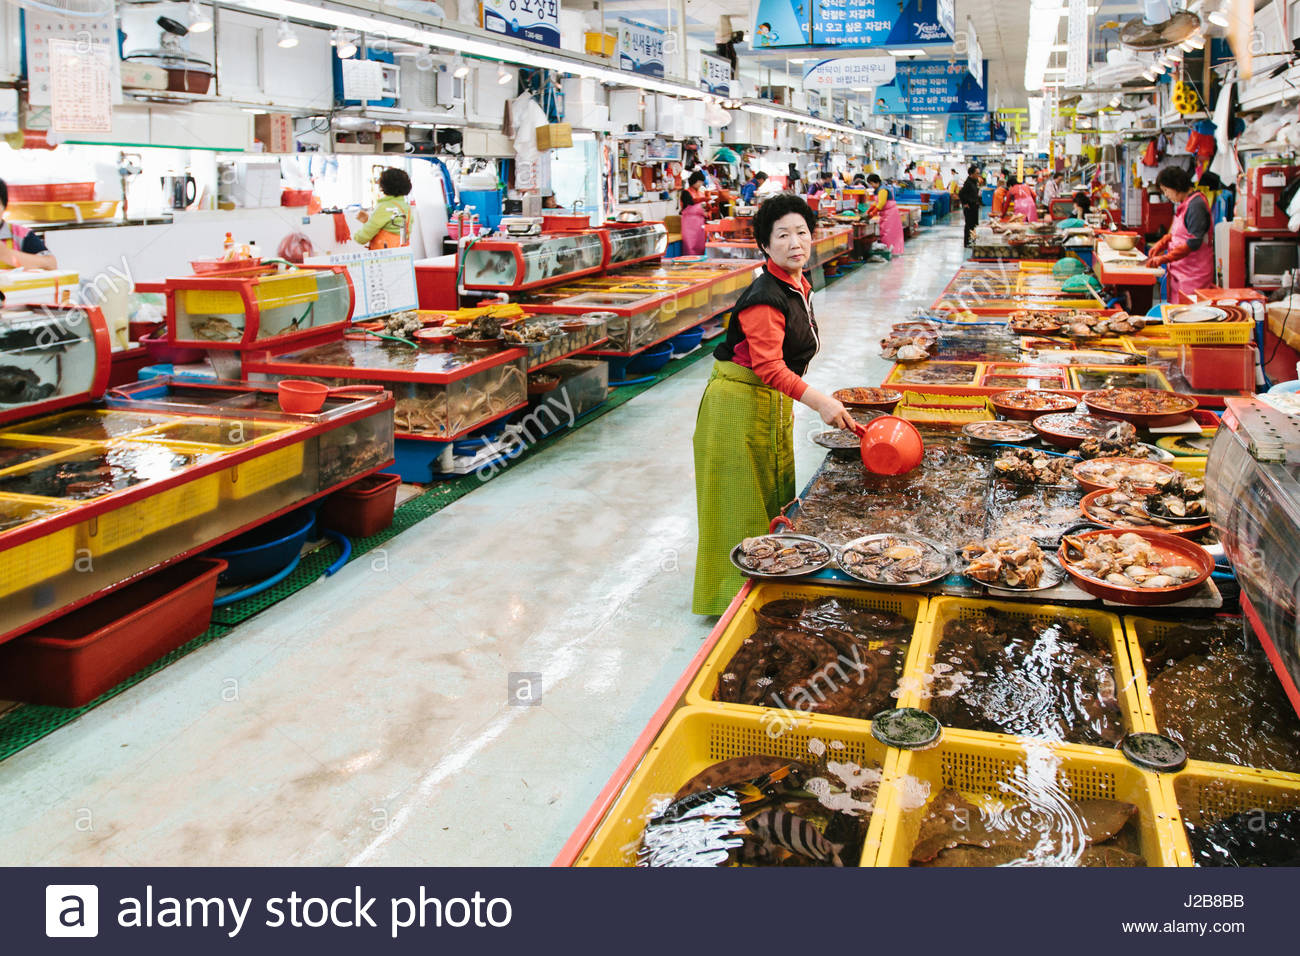 Seafood tank stock photos seafood tank stock images alamy for Live fish store